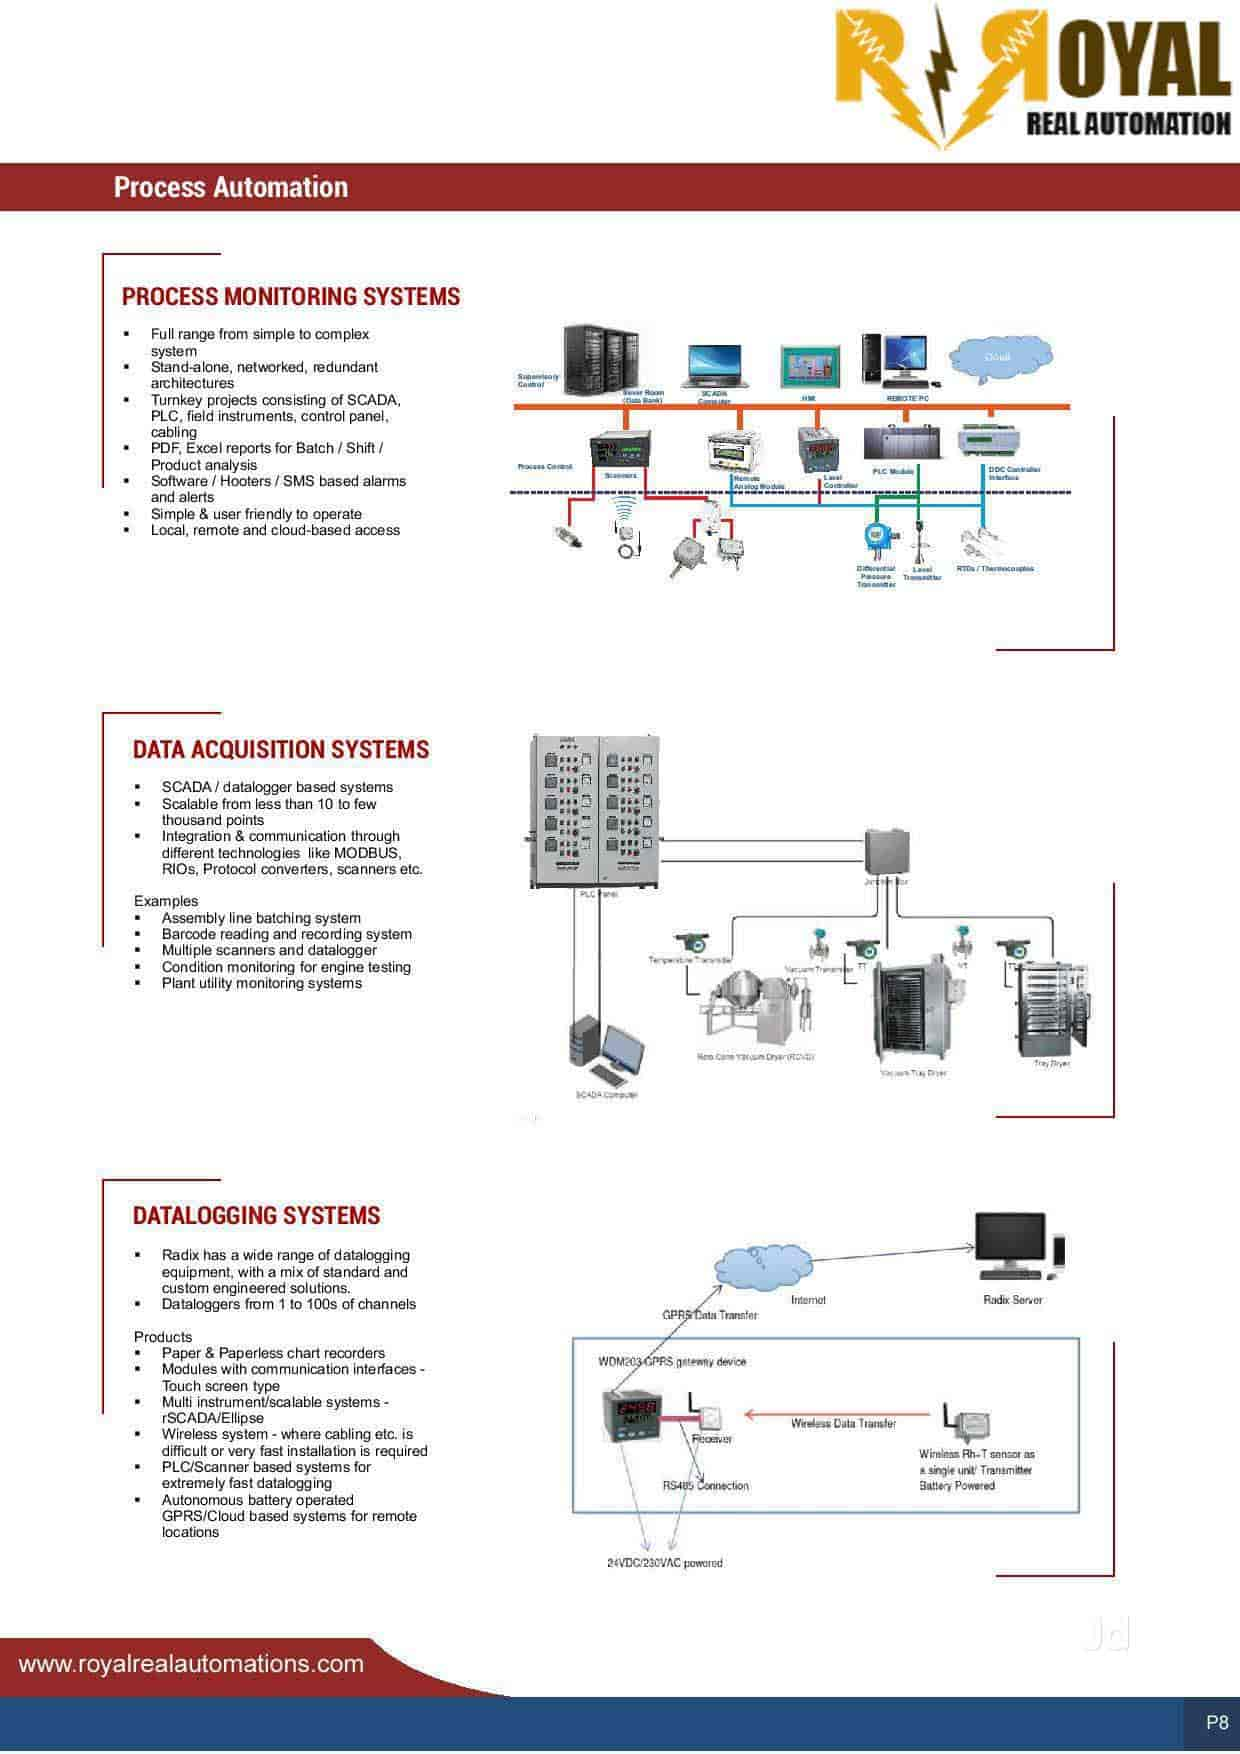 Royal Real Automation Photos Kalyan Puri Faridabad Sector 48 Bms Ddc Wiring Diagram Delhi Control Panel